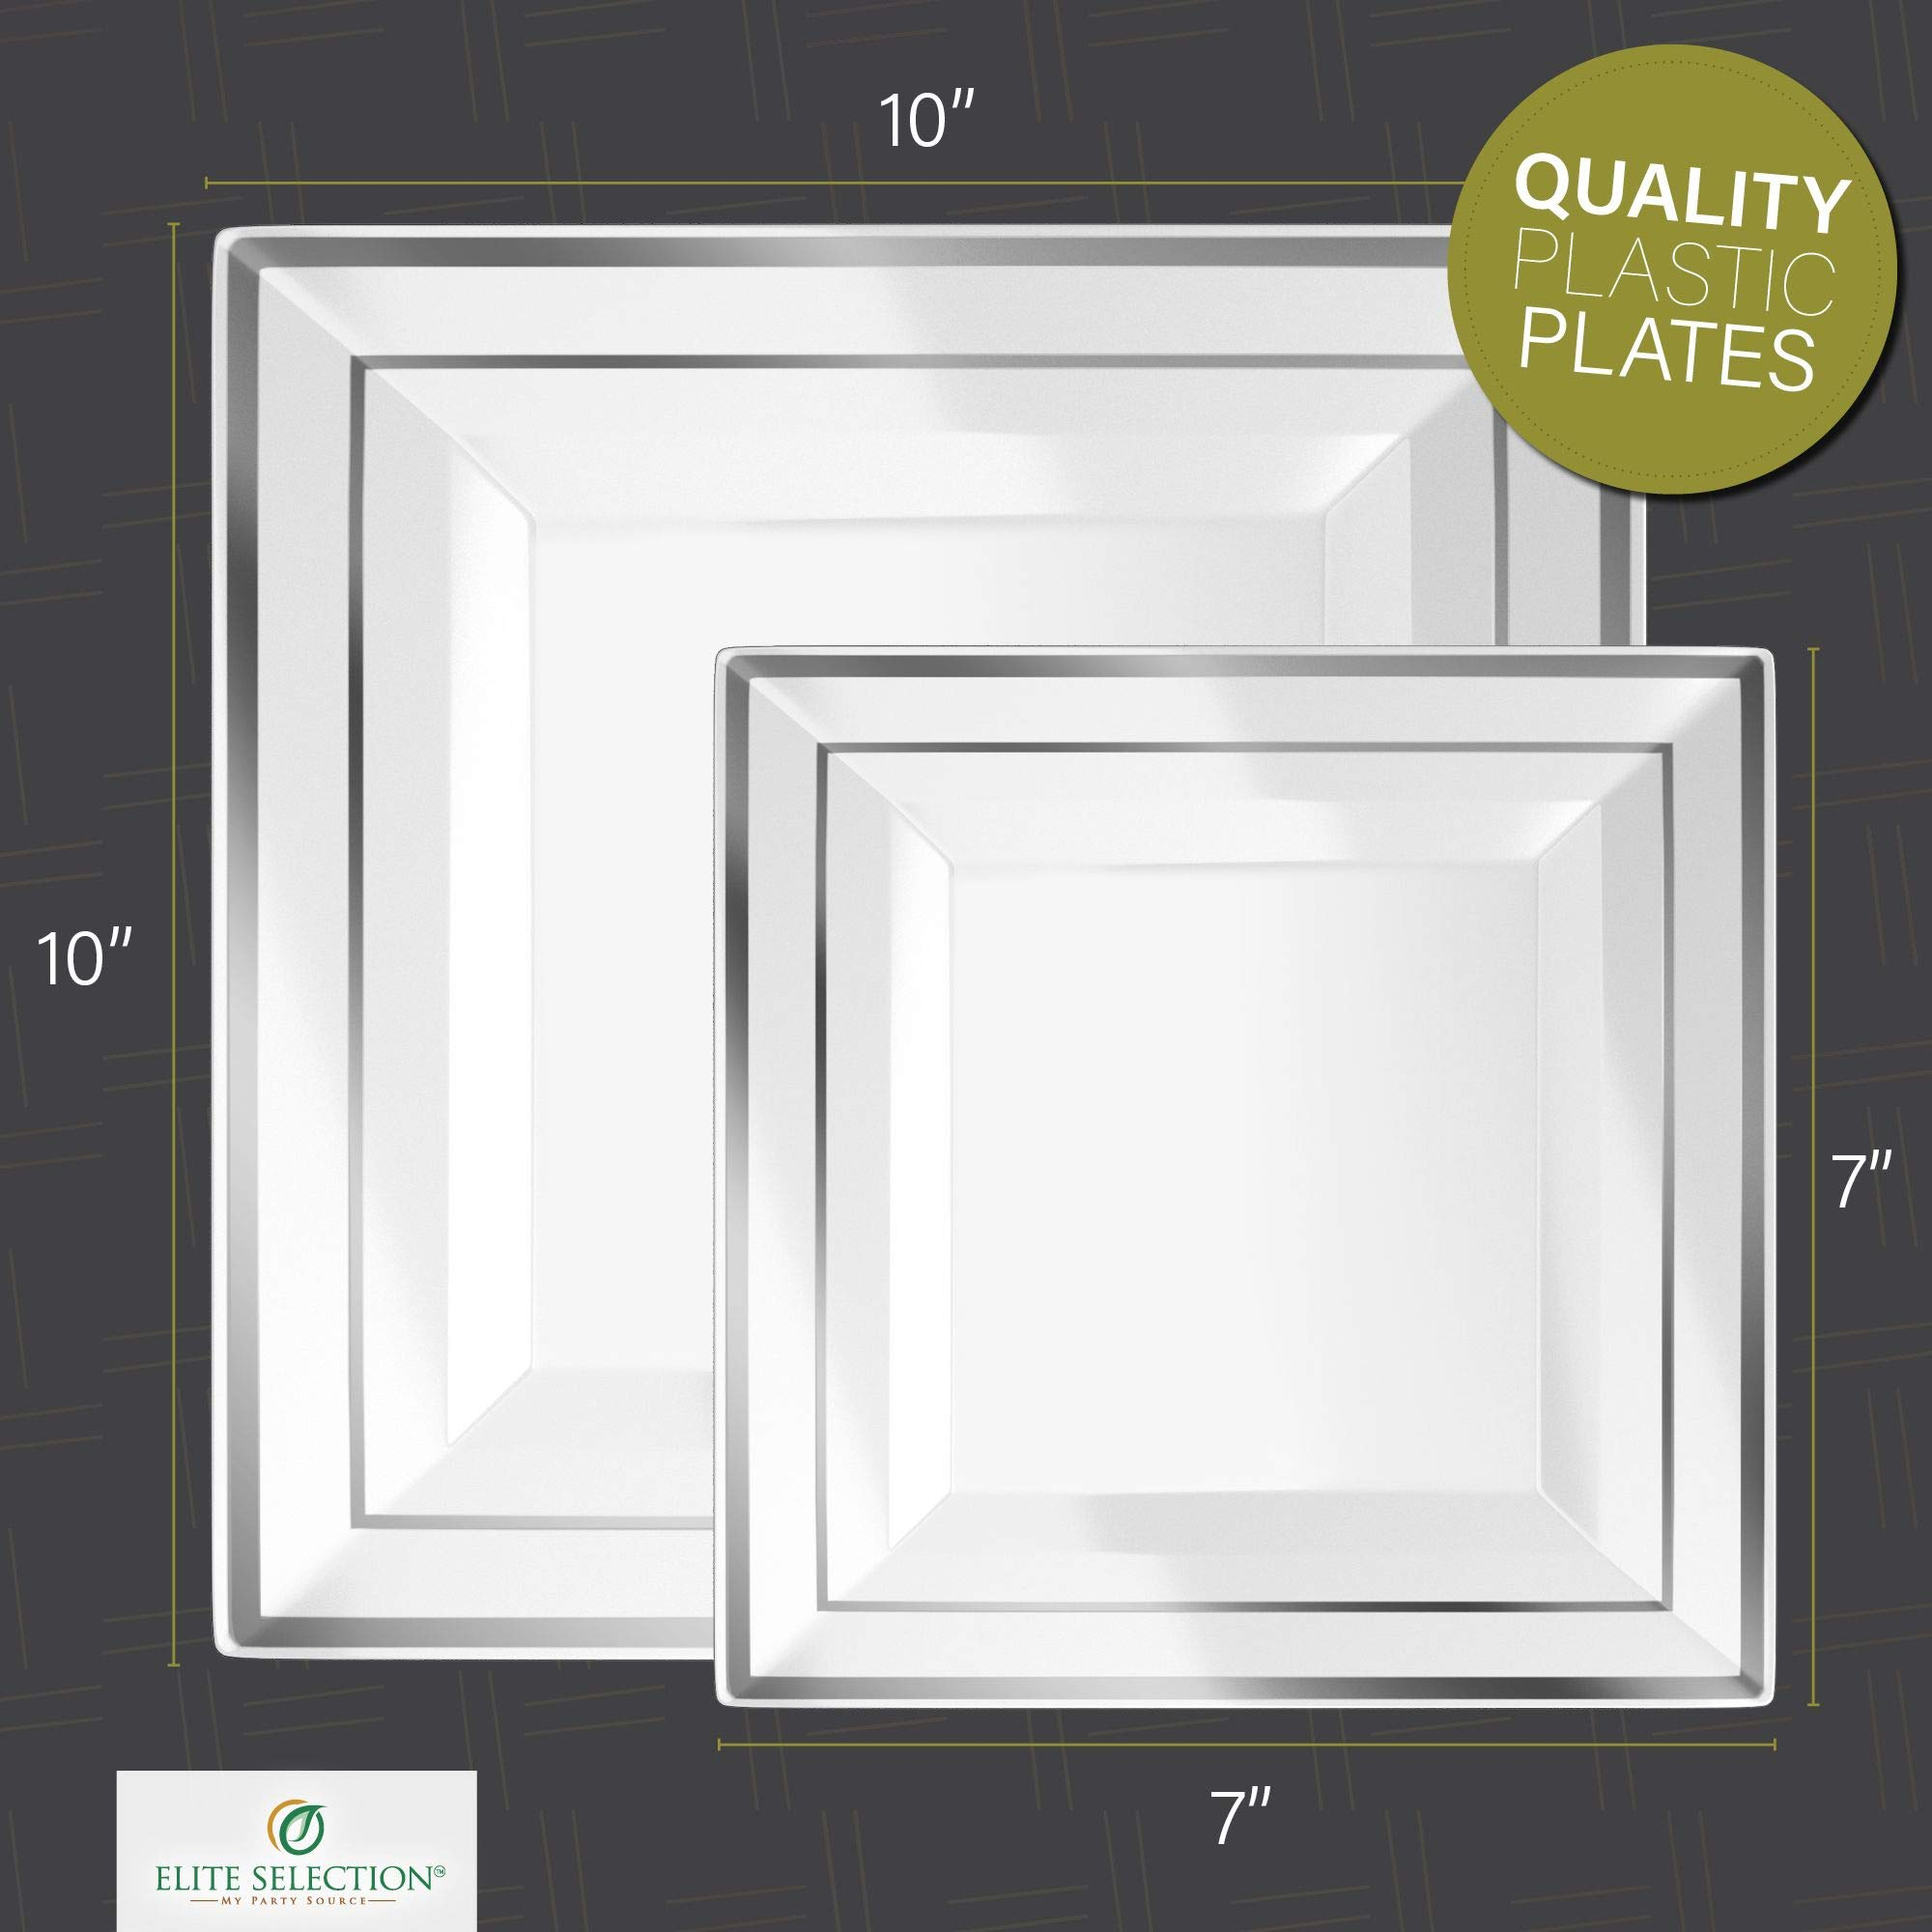 Disposable Plastic Plate Set - 40 Pack Dinnerware with 10'' Dinner and 7'' Salad Plate (20 Count Each) with Elegant Silver Trim for Wedding, Birthday, Party - by Elite Selection by ELITE SELECTION (Image #3)